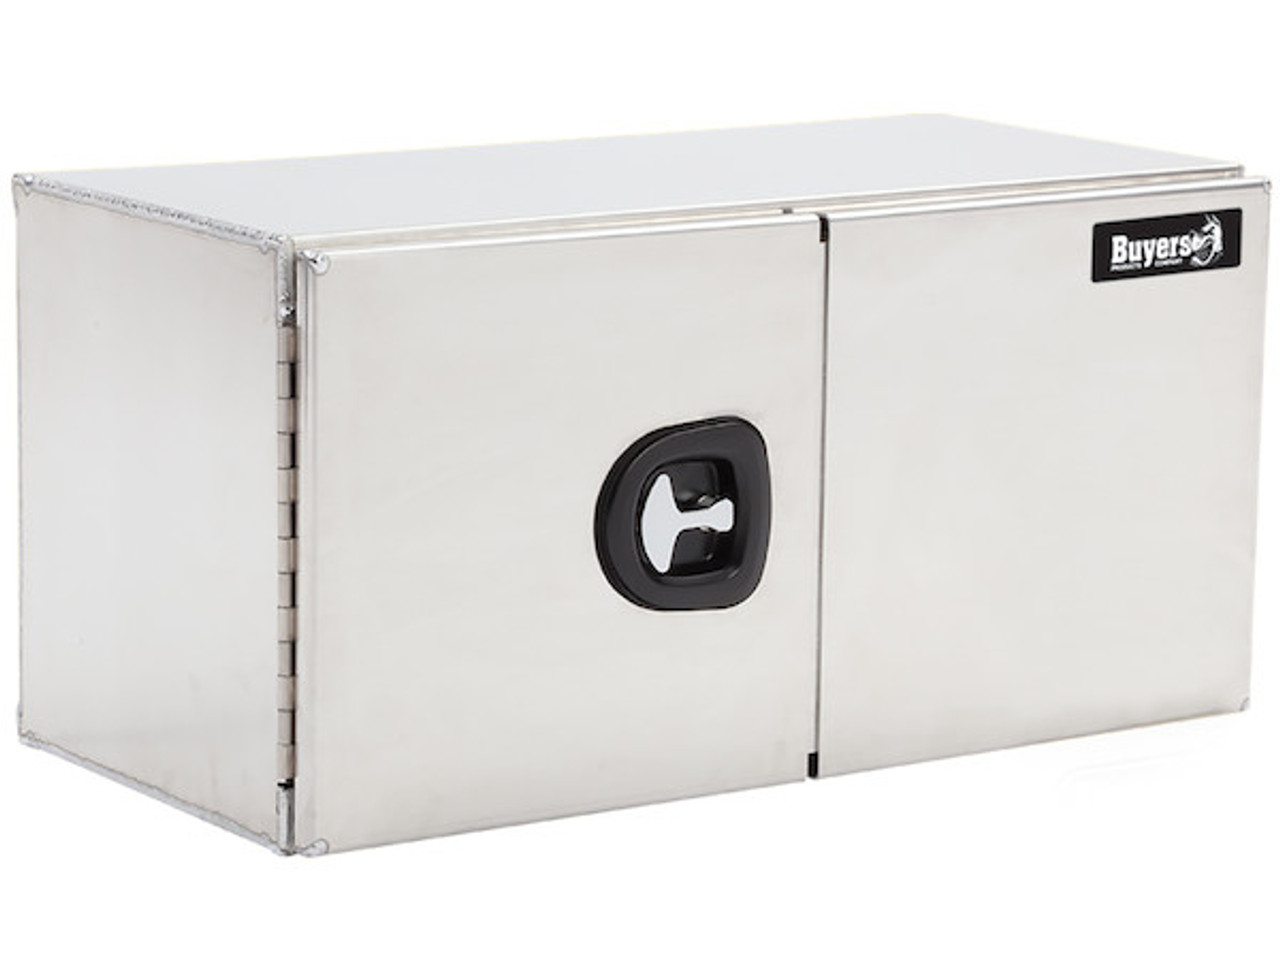 "1705333 BUYERS PRODUCTS SMOOTH ALUMINUM UNDERBODY TOOLBOX WITH BARN DOOR 24""HX24""DX30""W"